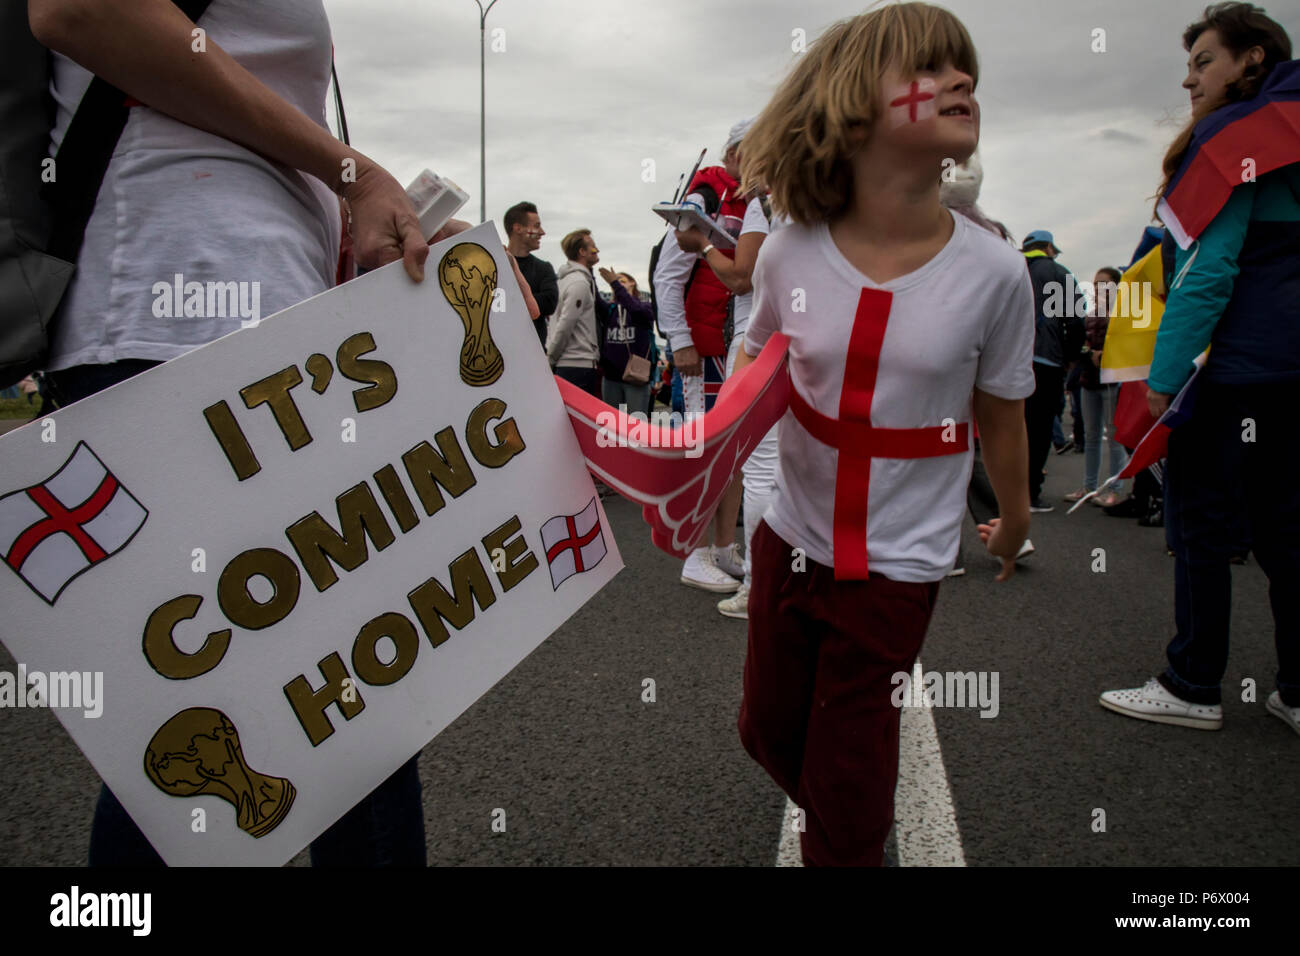 Moscow, Russia. 3th July, 2018. English fans cheer for his national team ahead of the round of 16 match between Colombia and England at the 2018 soccer World Cup near the Spartak Stadium, in Moscow Credit: Nikolay Vinokurov/Alamy Live News - Stock Image